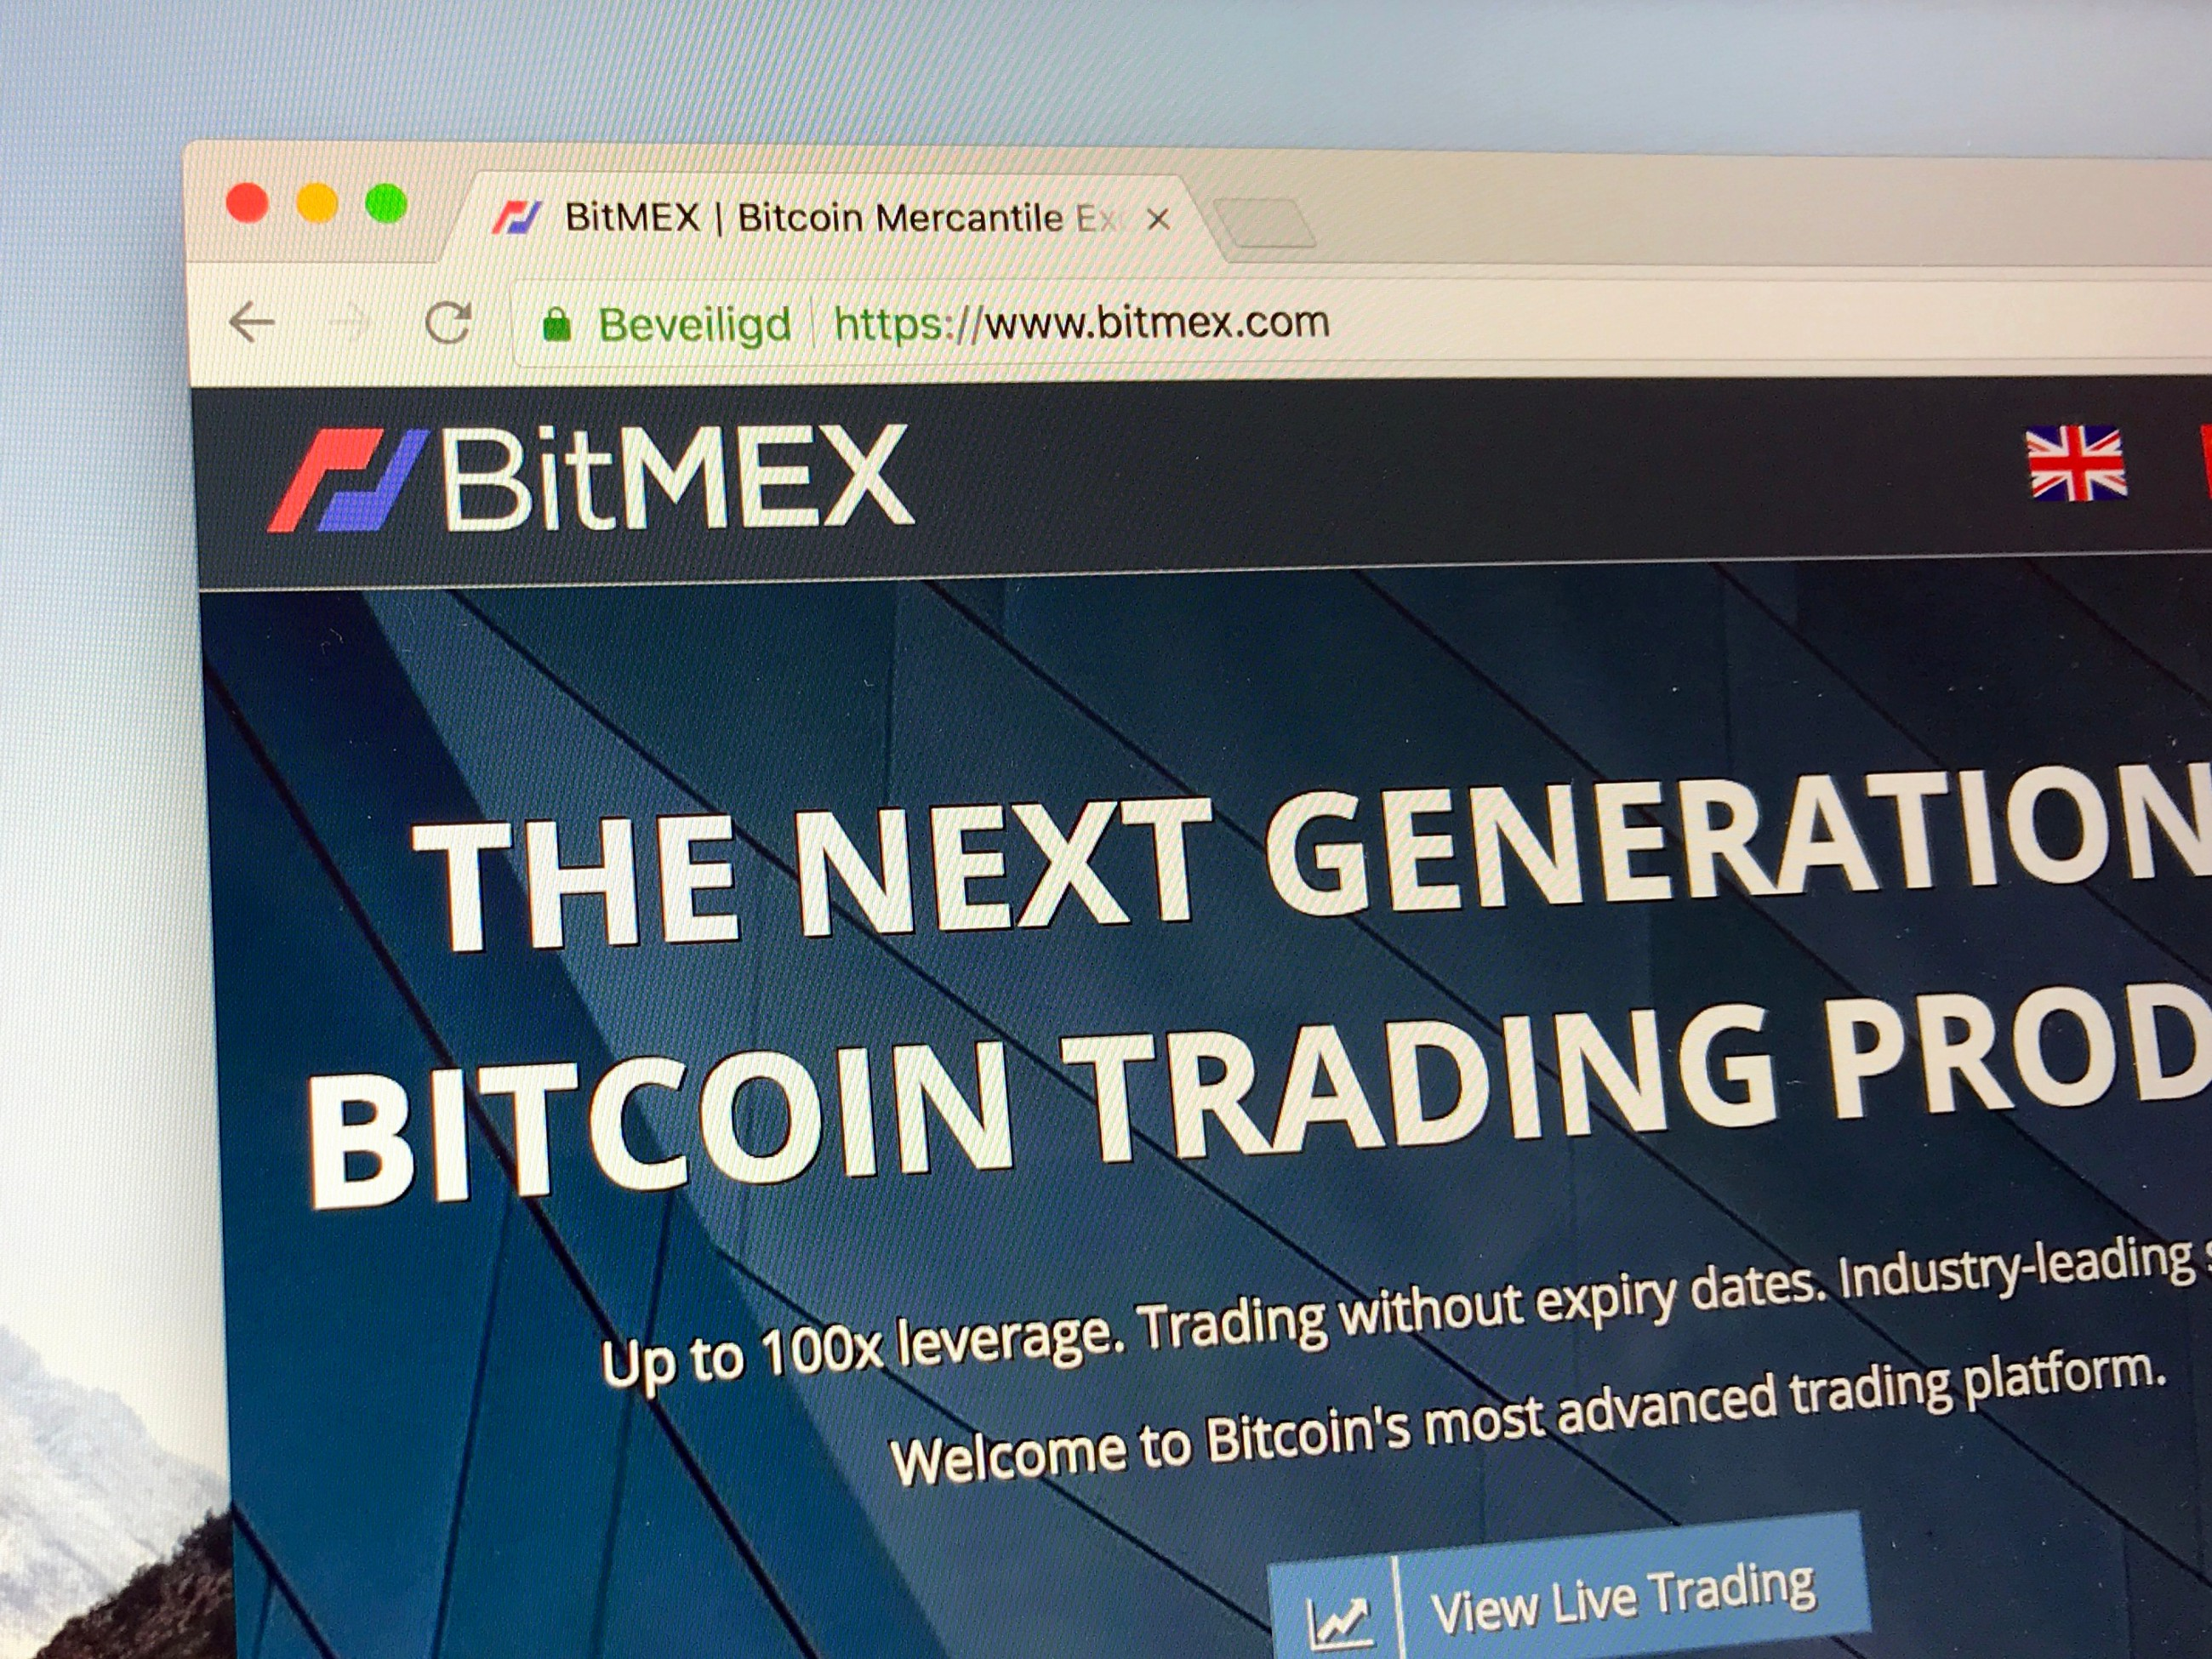 what are the penalties for a us resident using bitmex